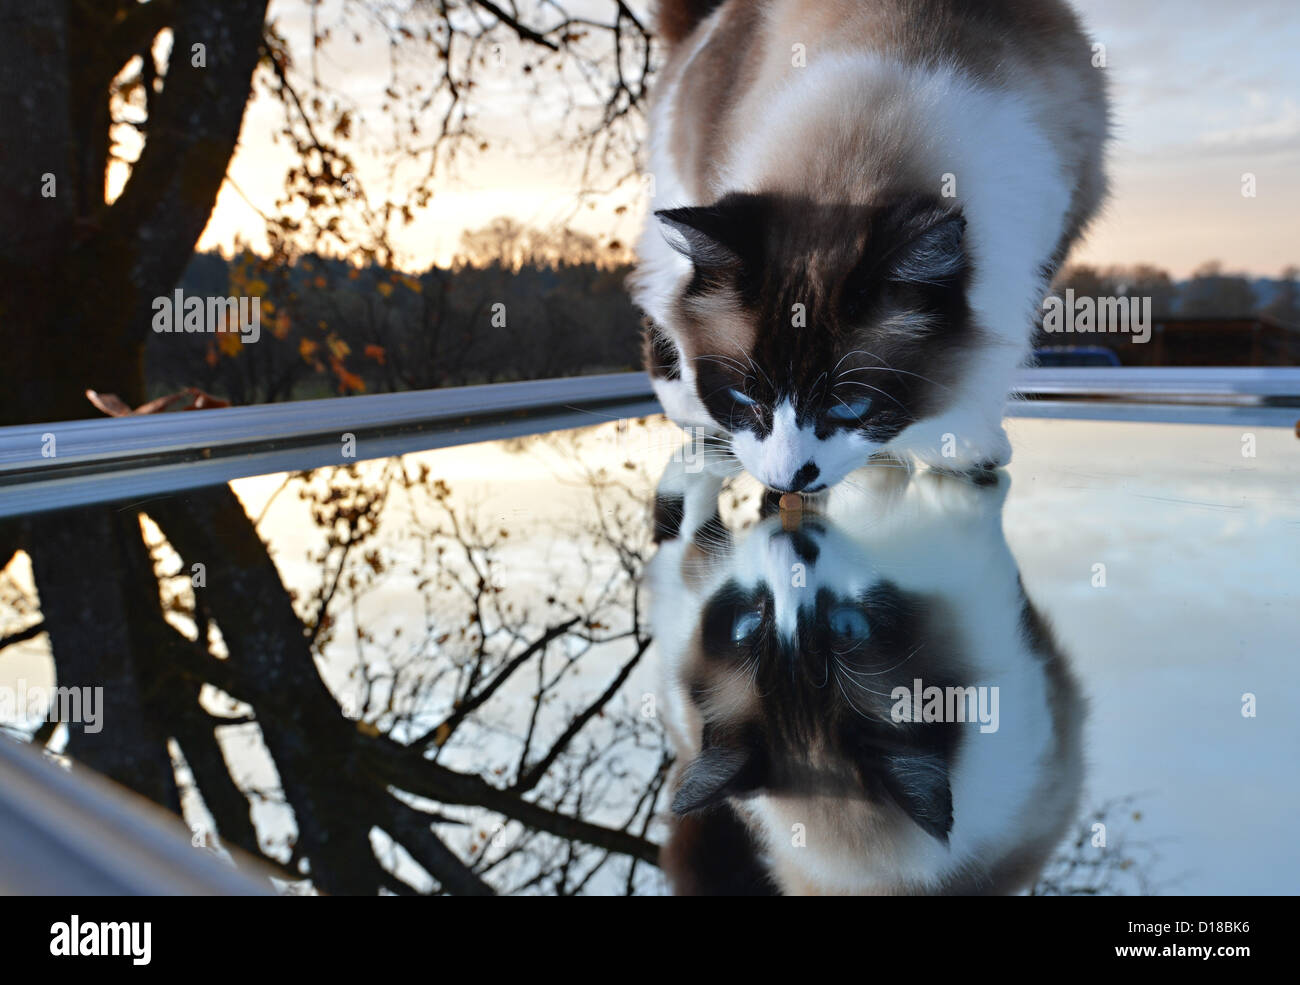 Nov. 16, 2012 - Roseburg, Oregon, U.S - A domestic cat looks into a mirror on the roof of a parked car in the driveway - Stock Image